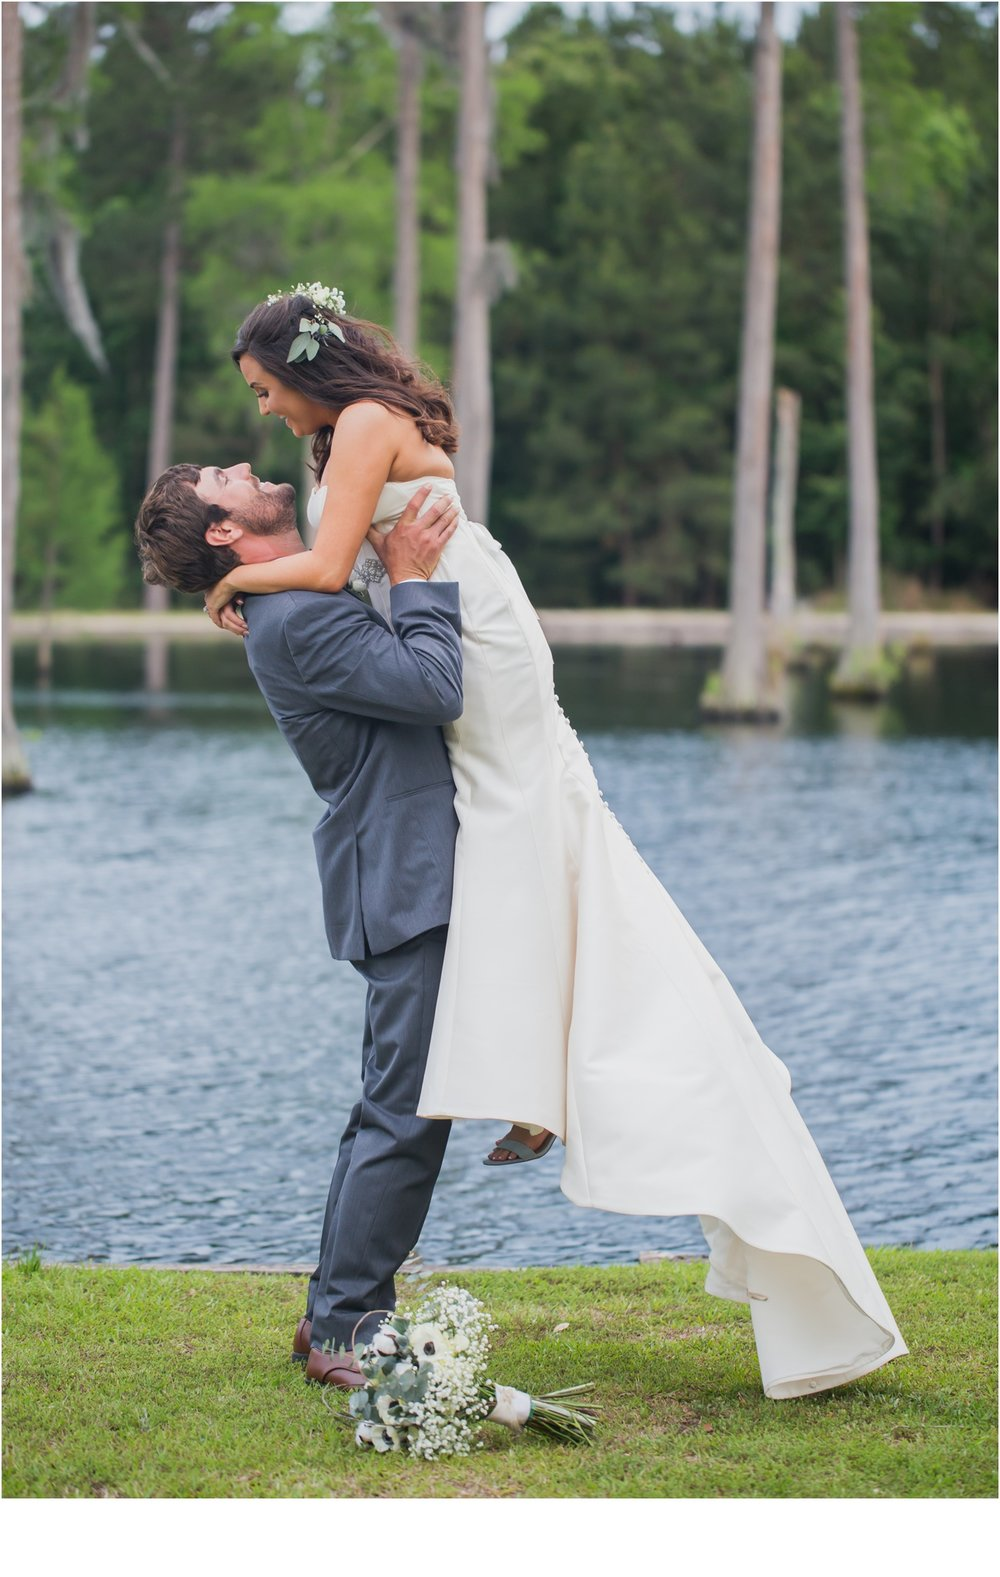 Rainey_Gregg_Photography_St._Simons_Island_Georgia_California_Wedding_Portrait_Photography_1009.jpg